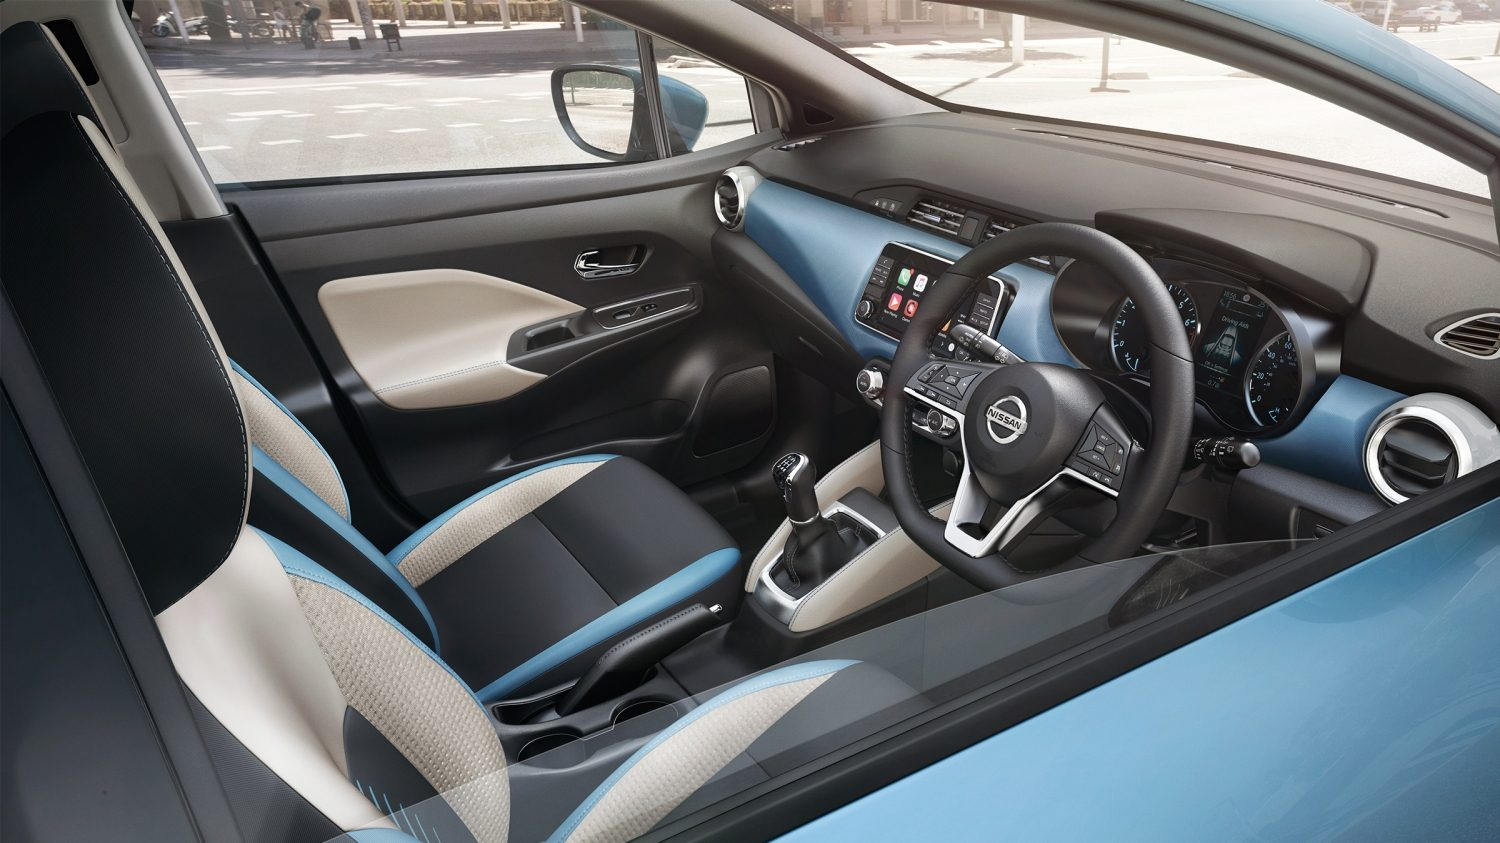 MICRA INTERIOR DESIGN FPO